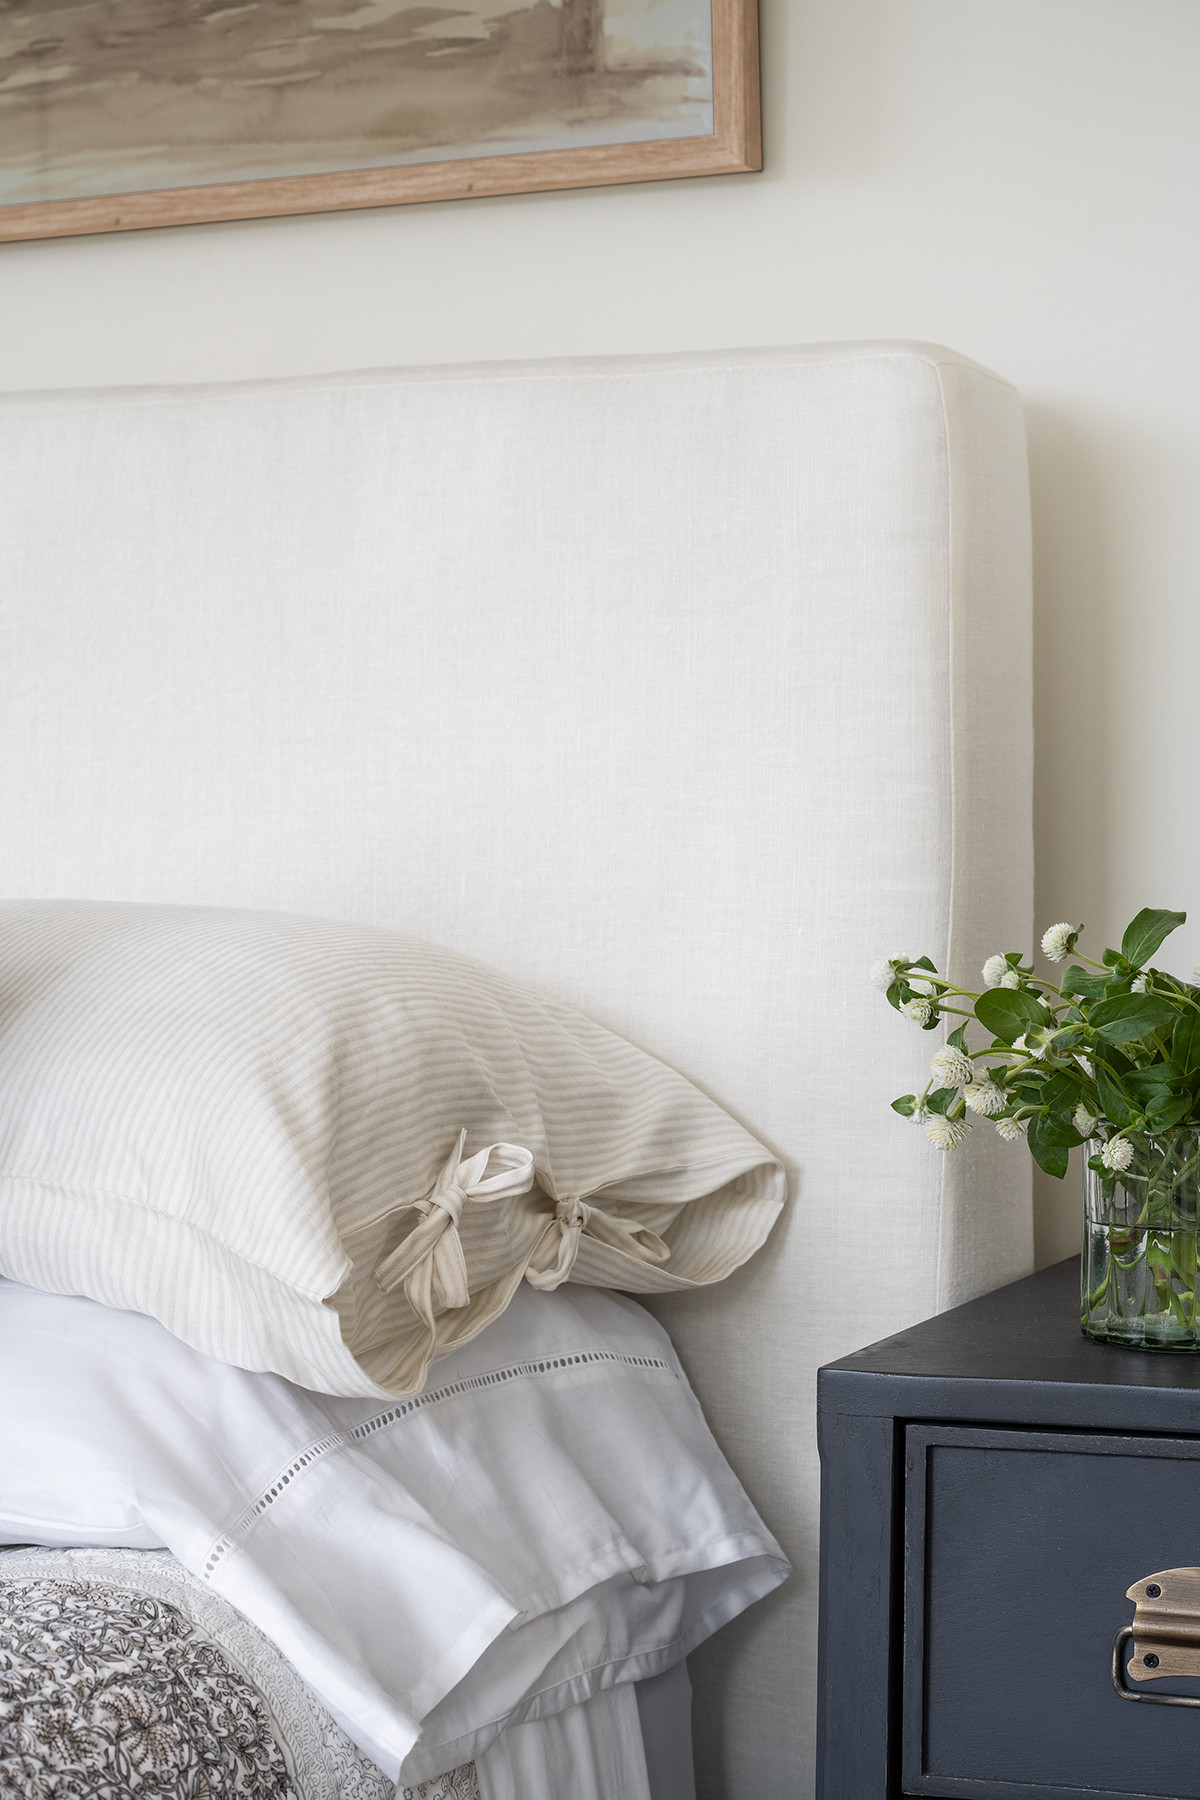 7 Tips for Creating a Peaceful Bedroom Setting